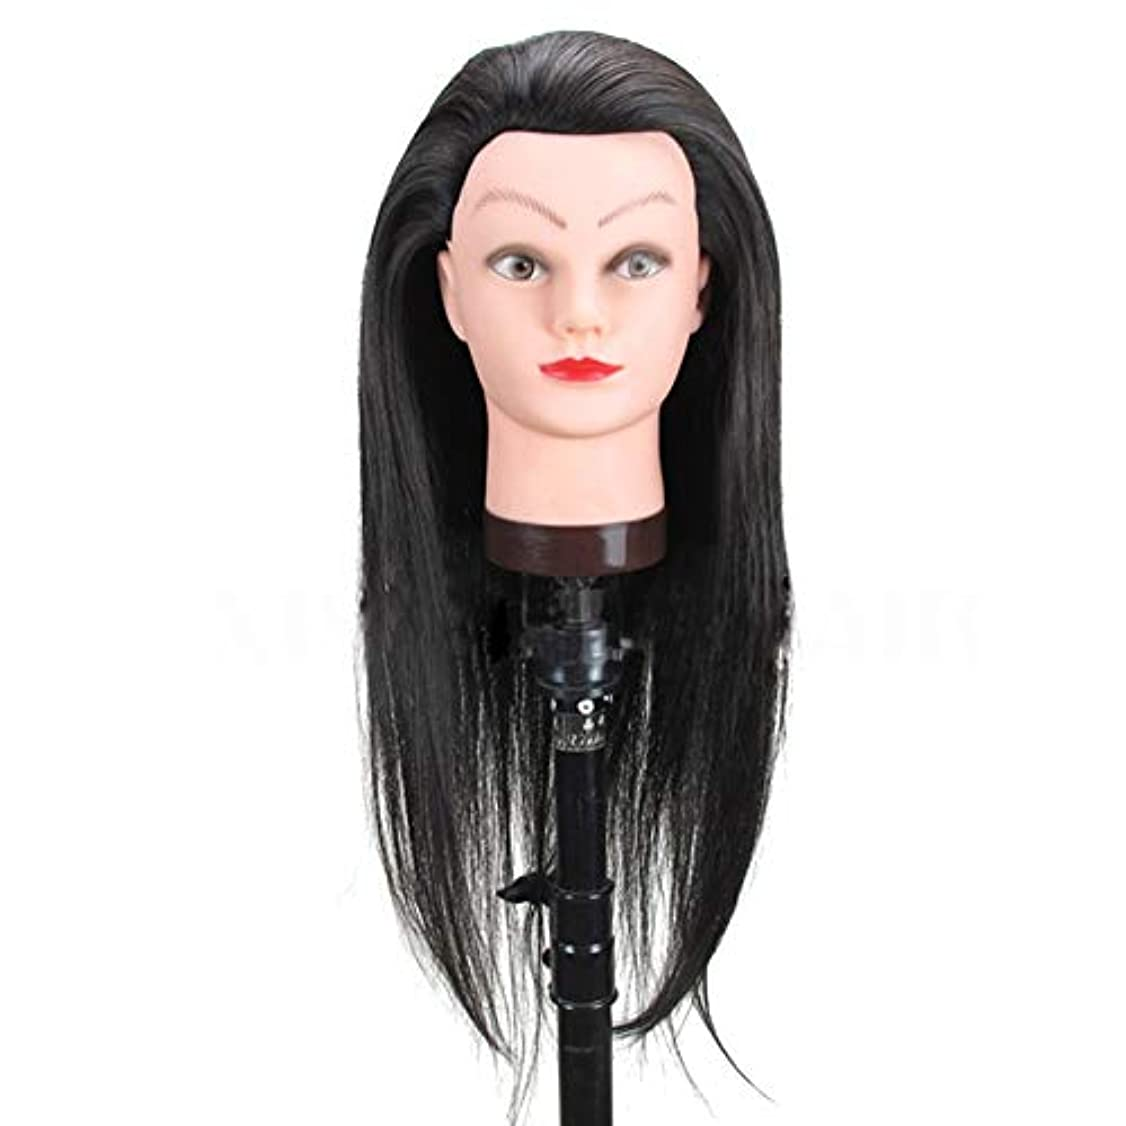 徒歩でシロナガスクジラ好ましいHairdressing Practice Head Model Braided Hair Training Head Head Barbershop Haircut Learning Dummy Mannequin Head.